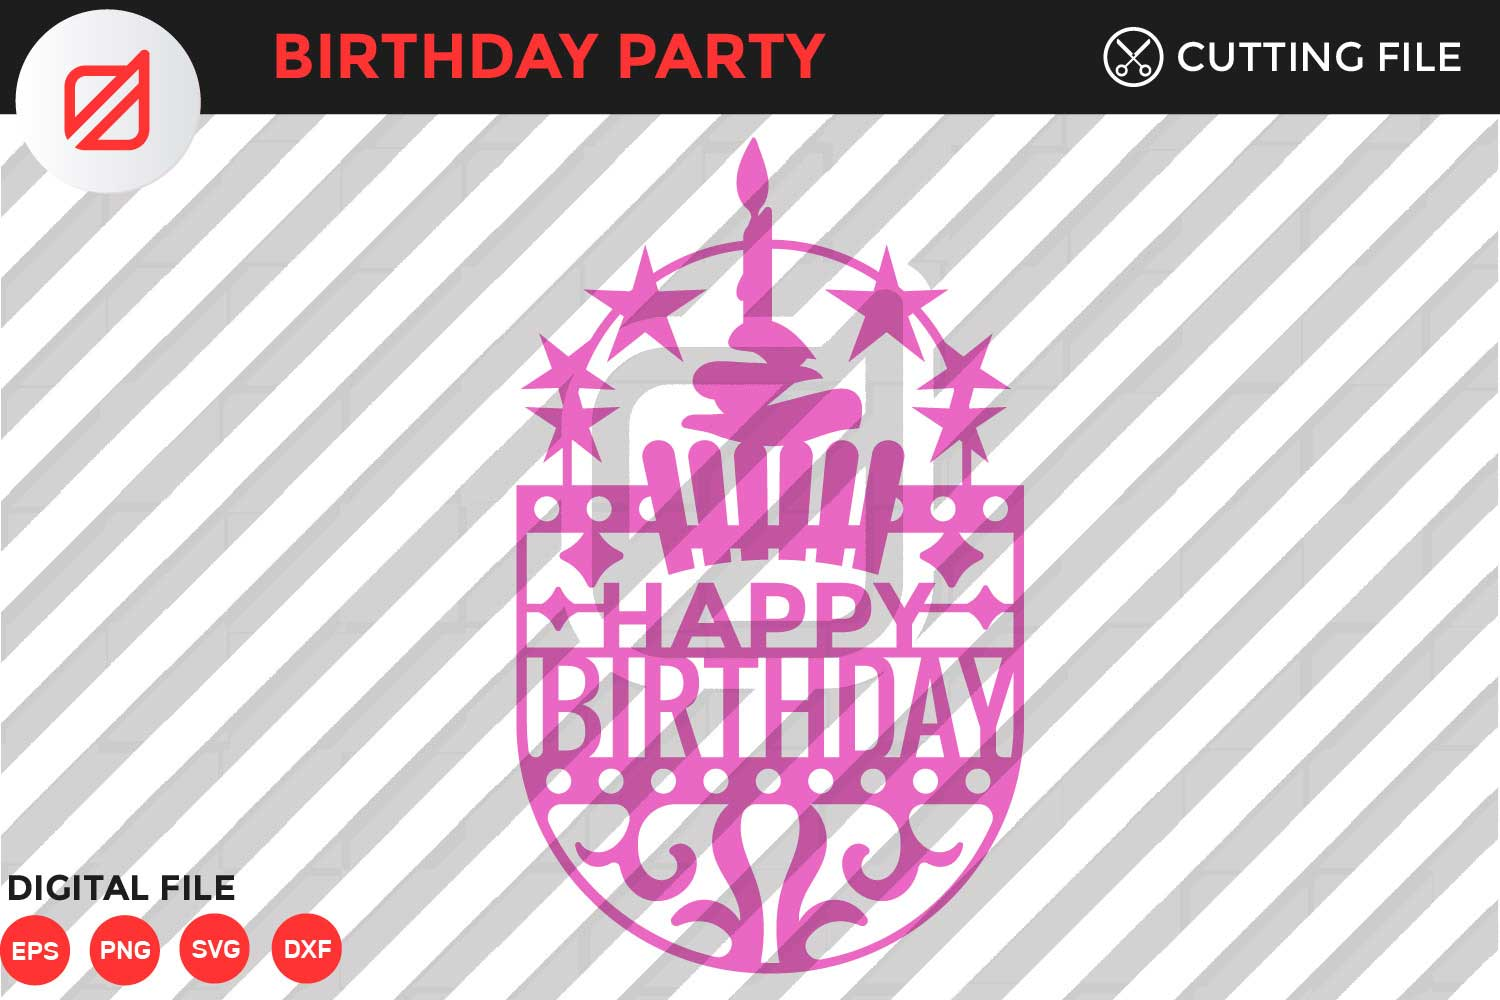 Download Free Happy Birthday Cutting File V2 Graphic By Illusatrian Creative for Cricut Explore, Silhouette and other cutting machines.